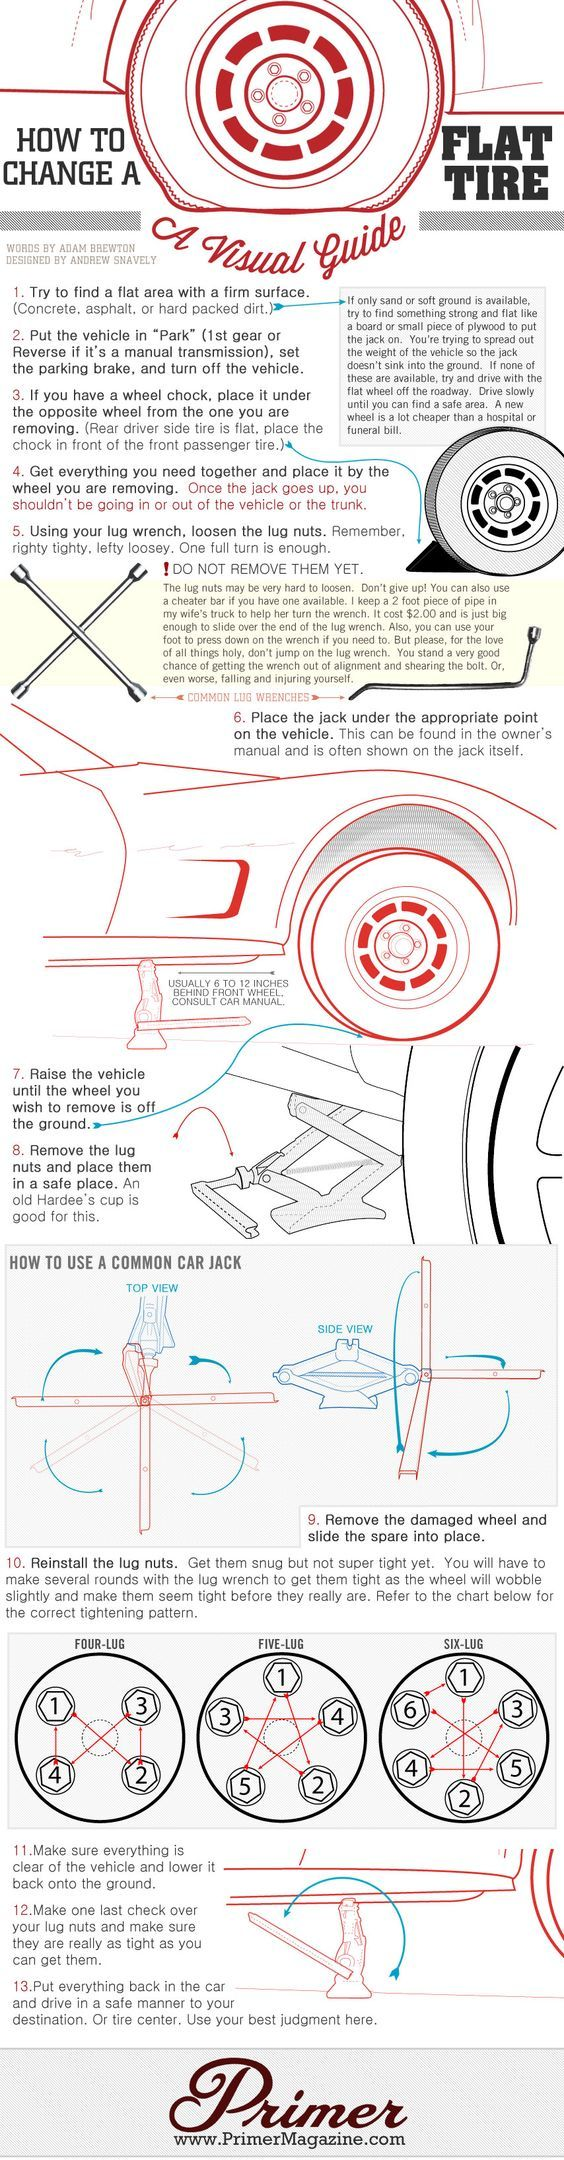 small resolution of how to change a flat tire visual guide yes a properly running car is a fabulous accessory